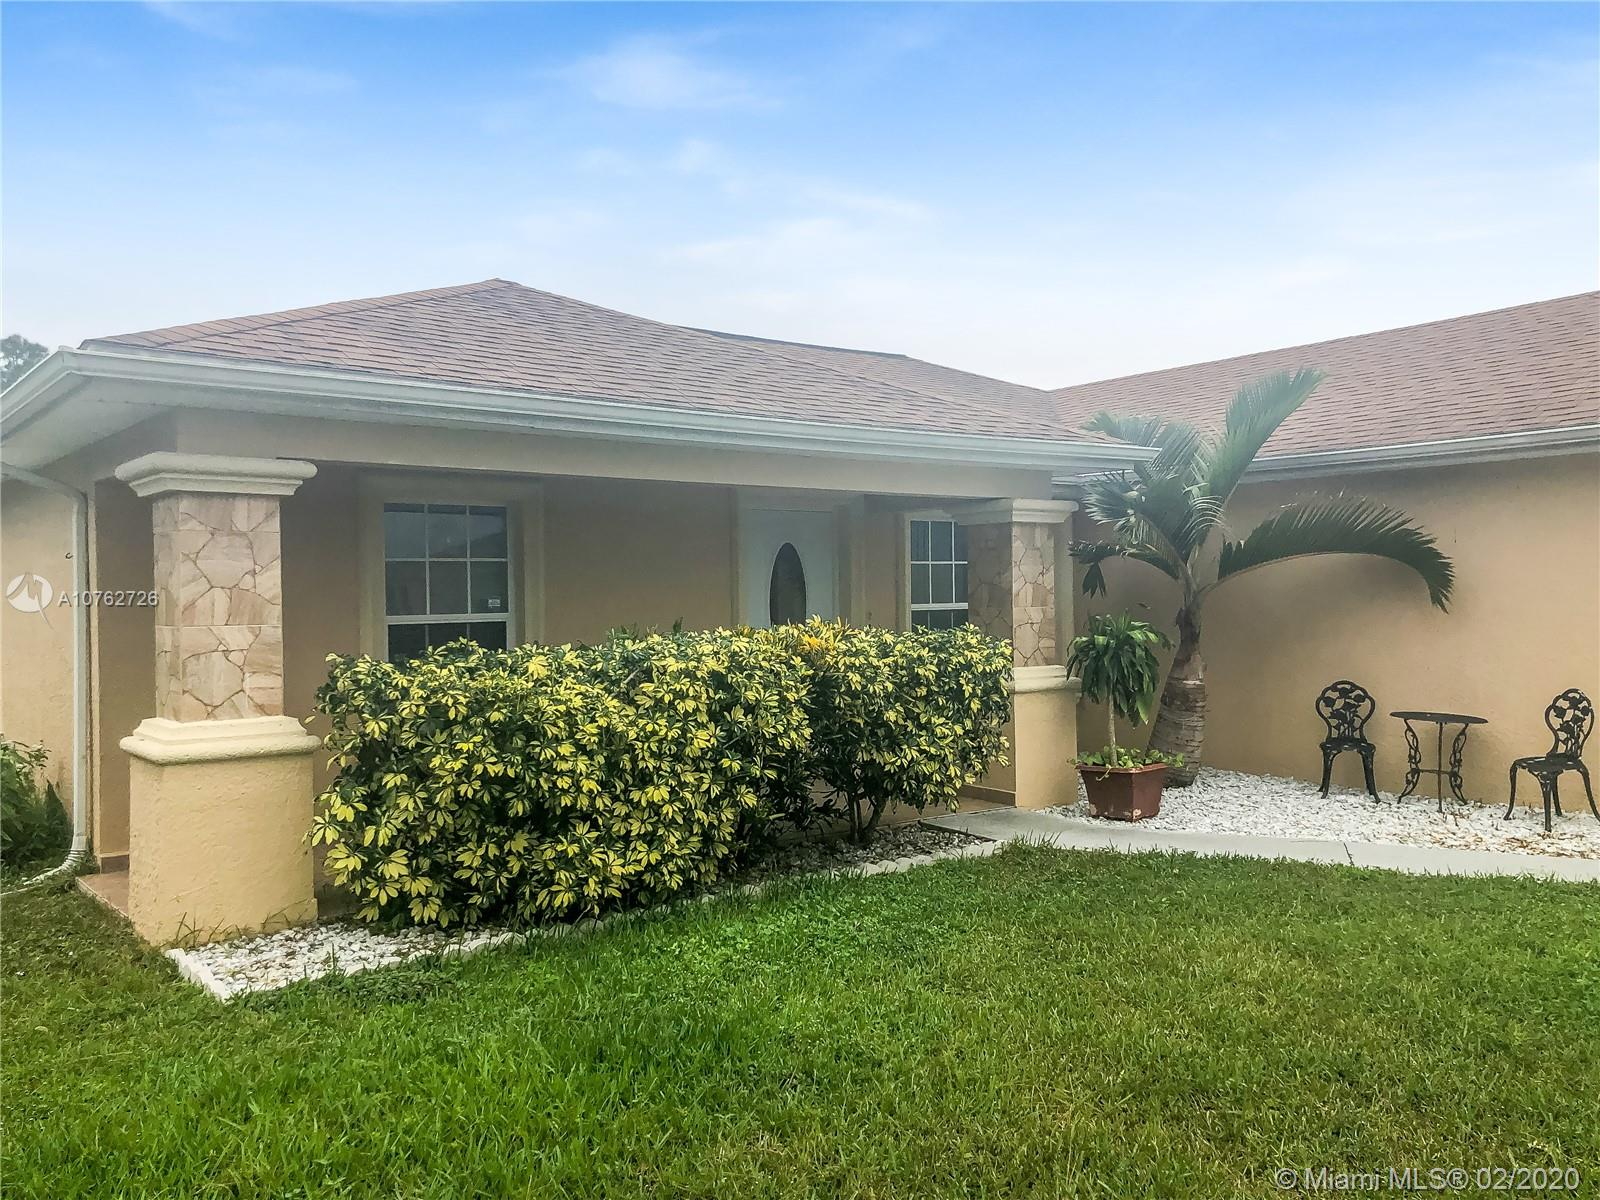 3805 35 st sw, Other City - In The State Of Florida, FL 33976